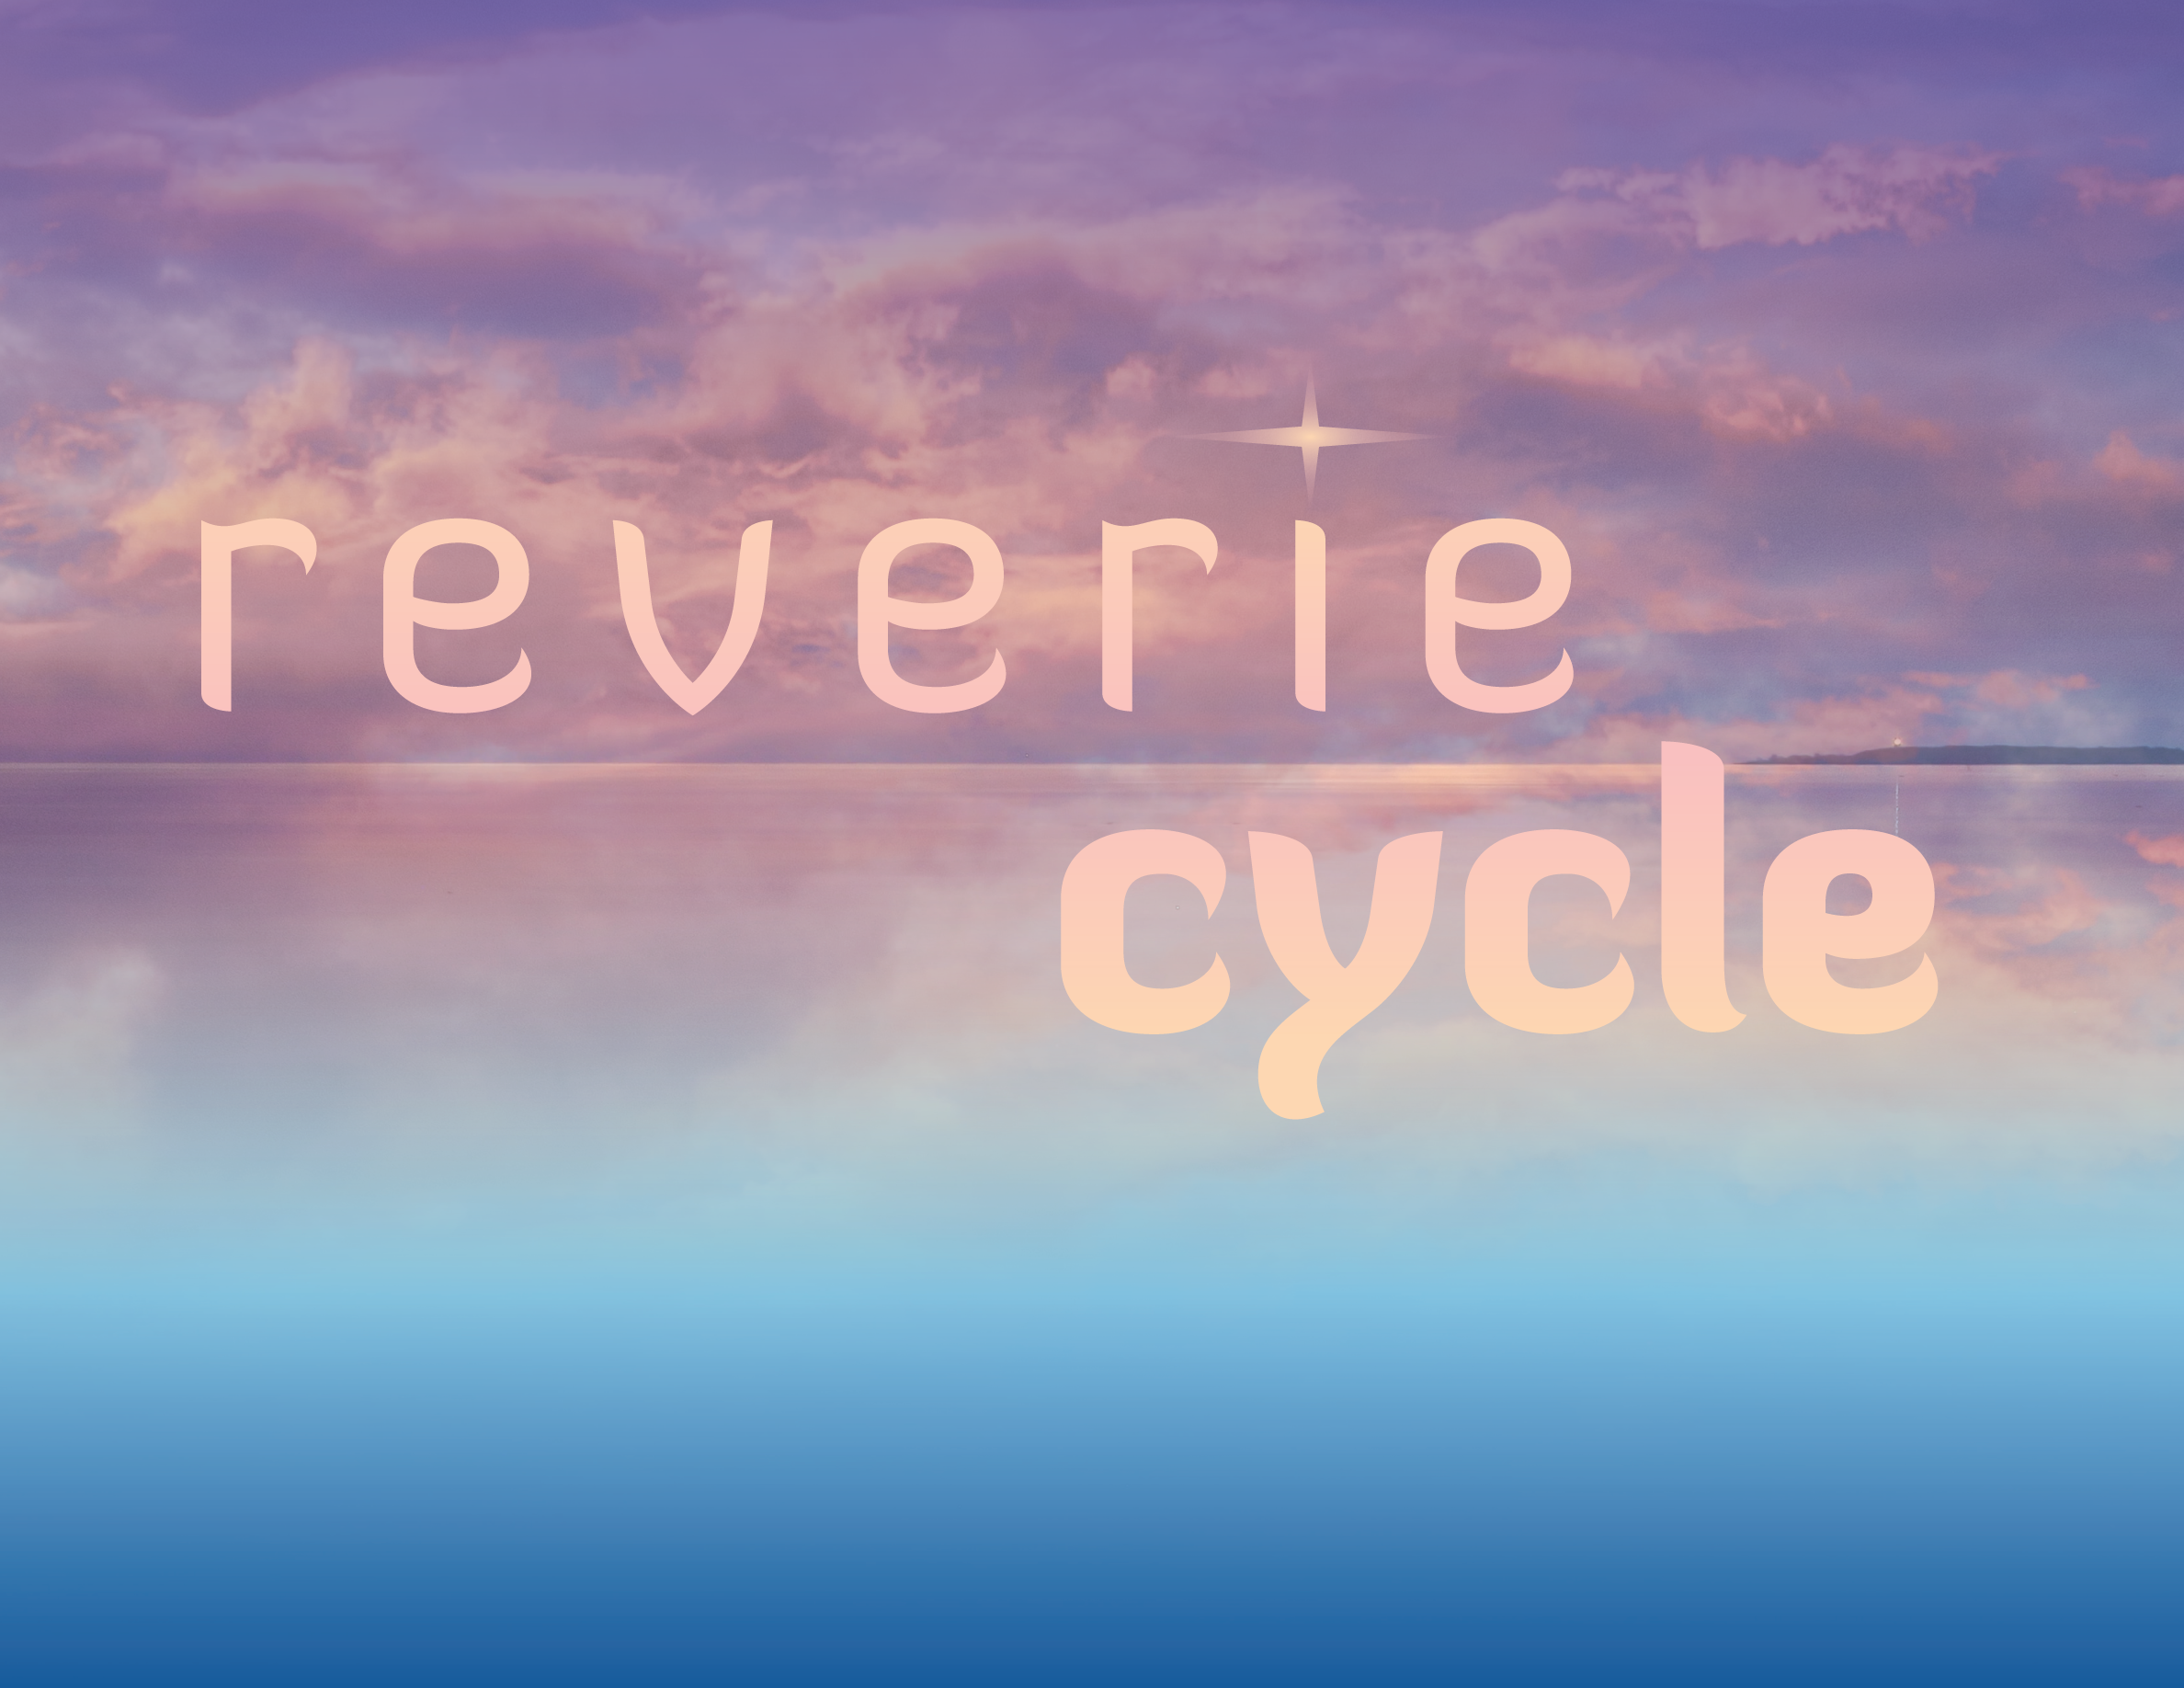 Reverie Cycle